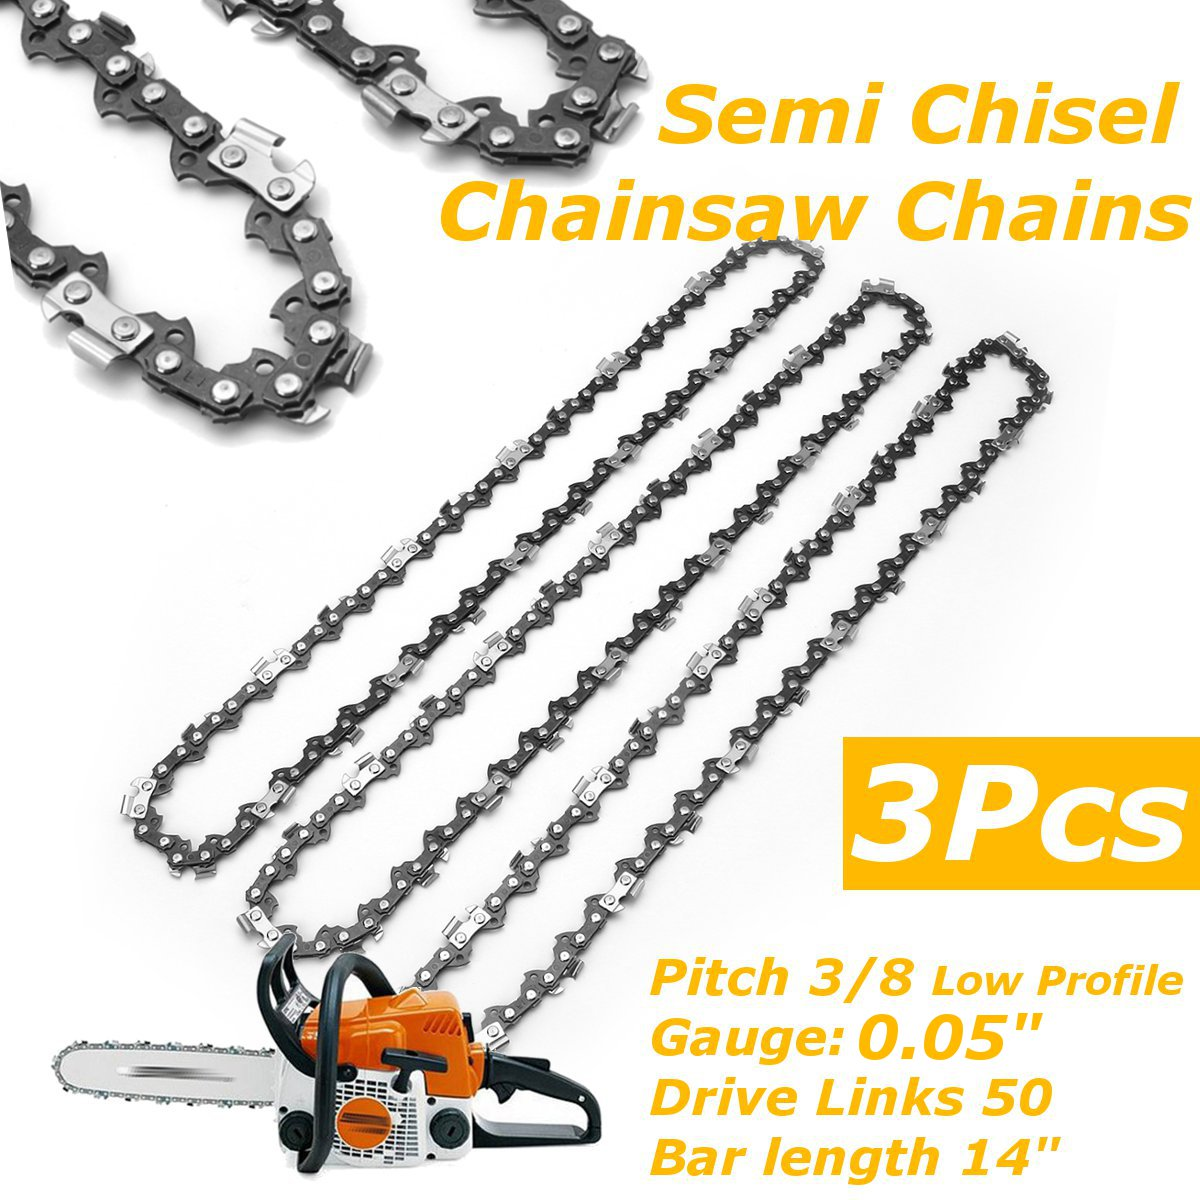 3pcs/set Chainsaw Semi Chisel Chains 3/8LP 0.05 For Stihl MS170 MS171 MS180 MS181 Electric Saw Garden Power Tools Chainsaws